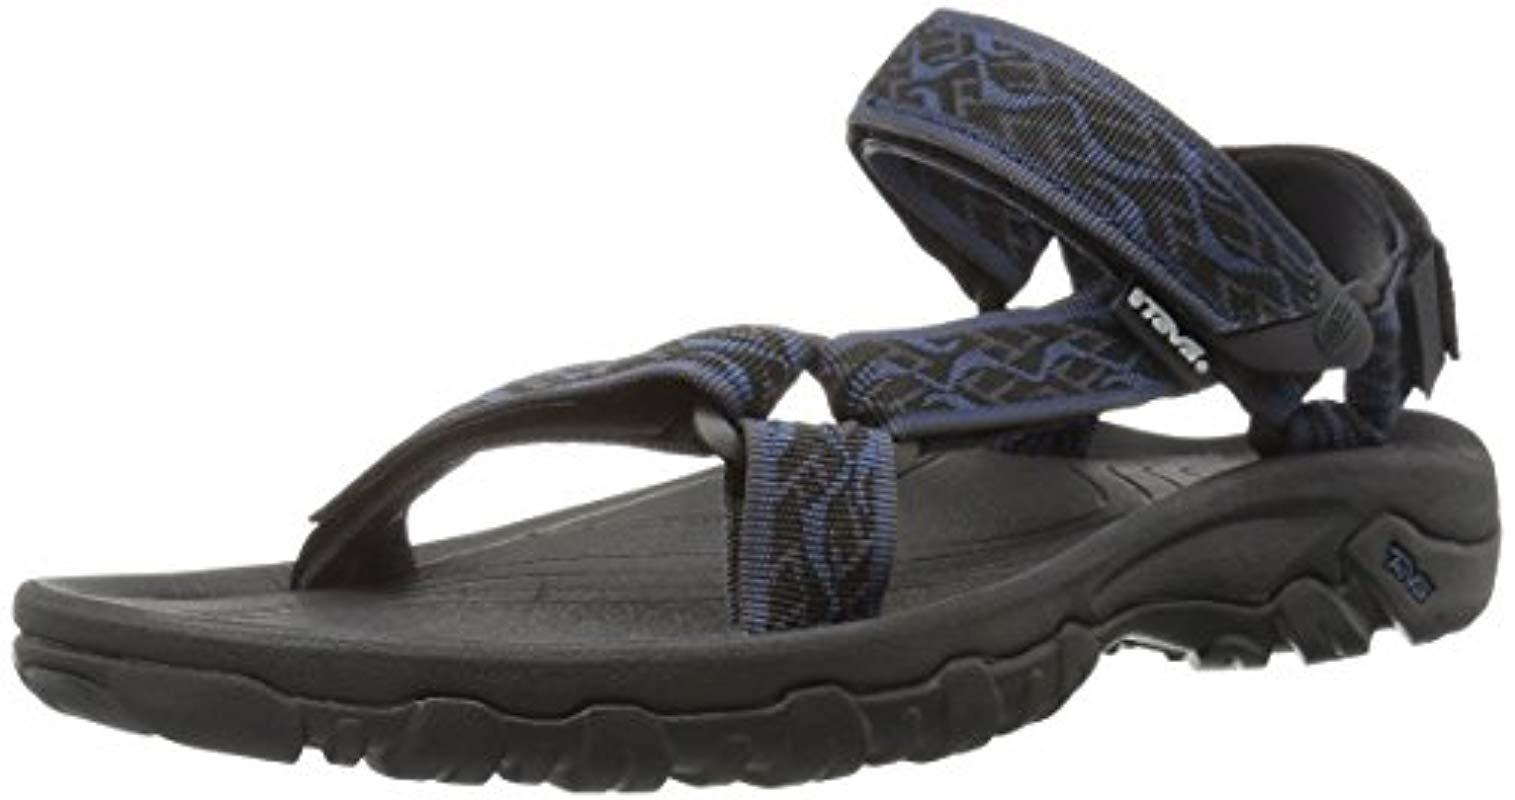 dab5a3cbc Lyst - Teva Hurricane Xlt2 M s Ankle Strap Sandals in Blue for Men